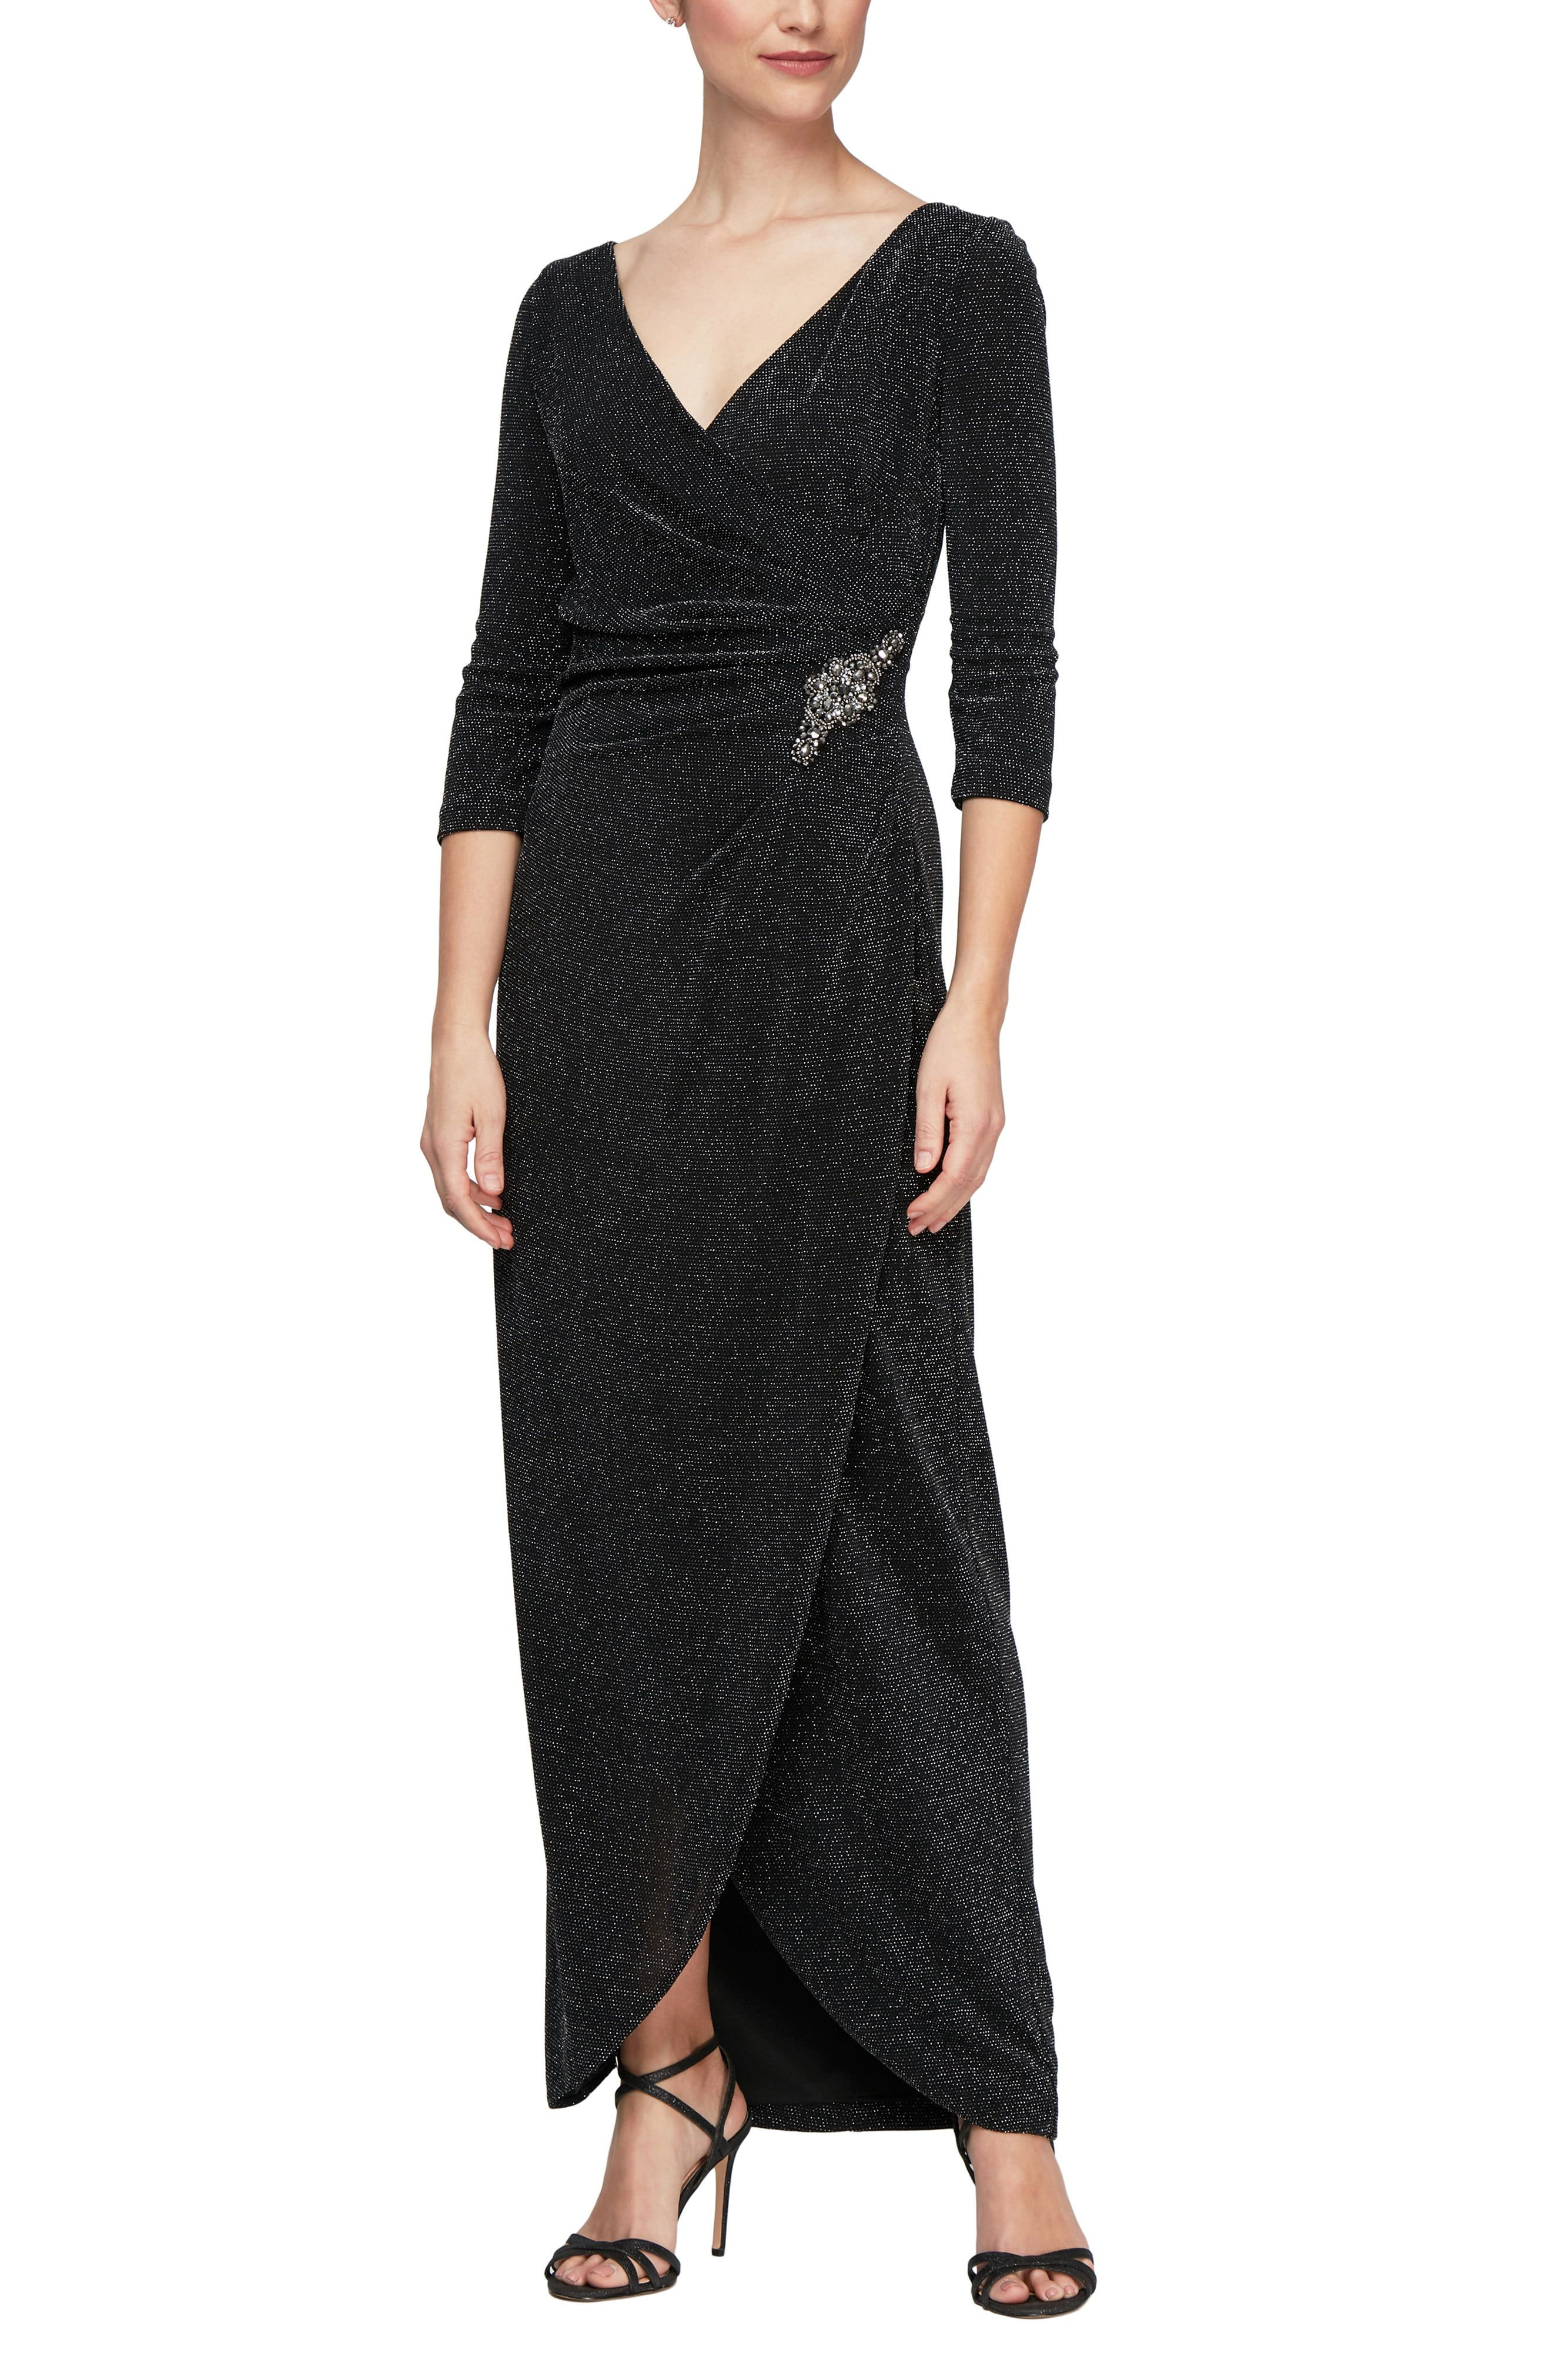 Shine like the night sky in this elegant knit dress accentuated by a shimmering clasp at the waist and dusted with glitter. Style Name:Alex Evenings Surplice Metallic Knit Dress. Style Number: 6157259. Available in stores.